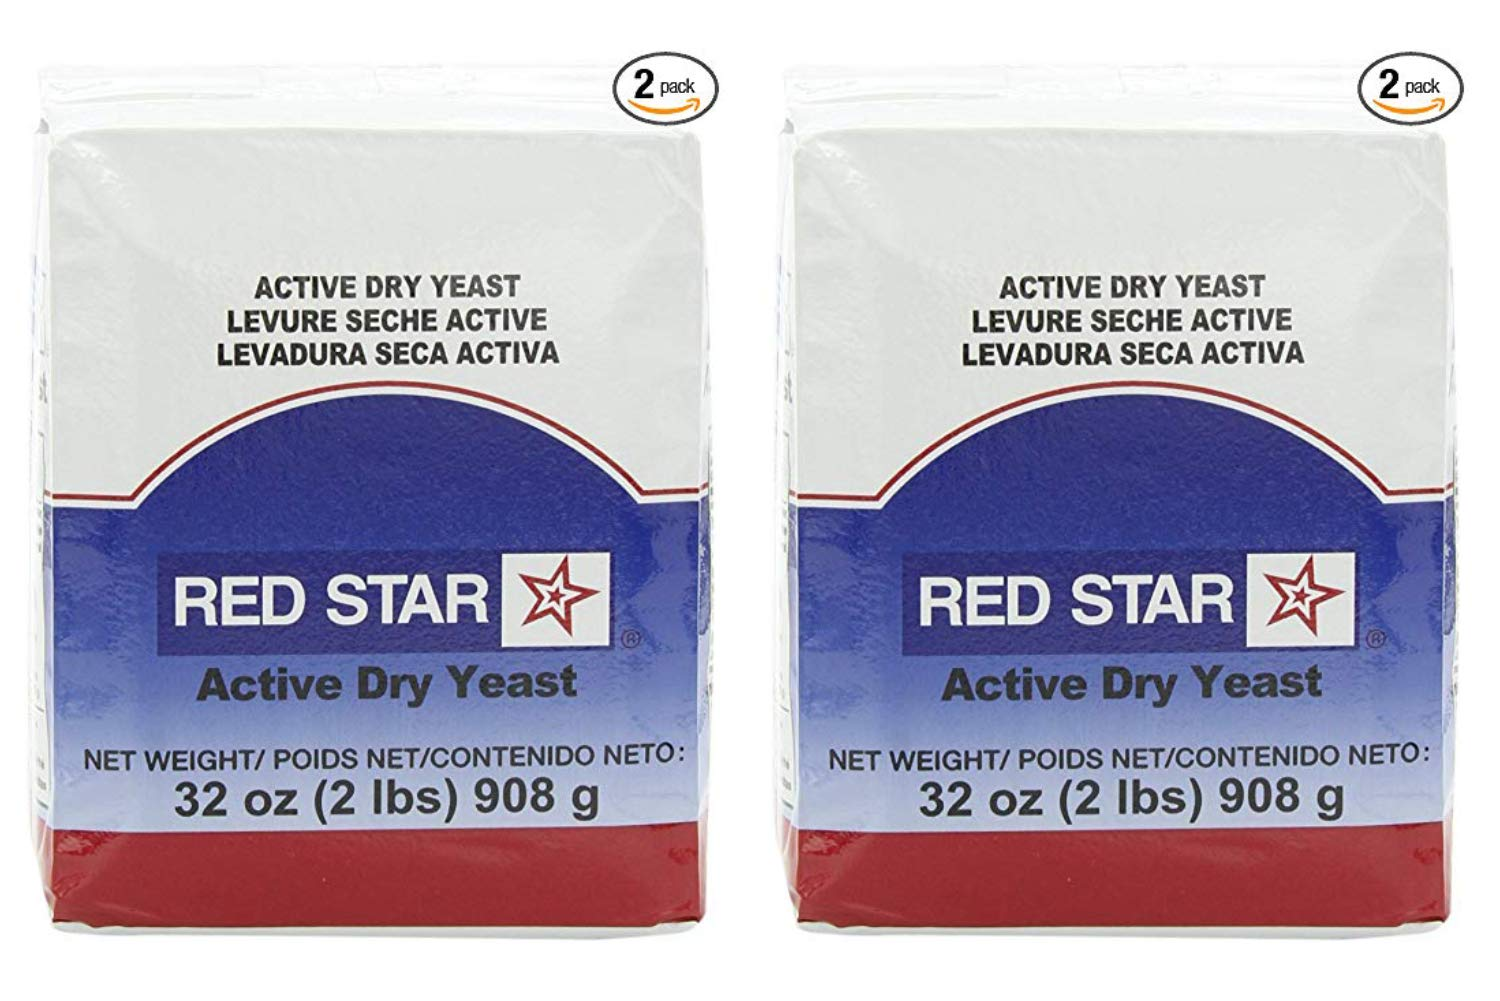 Red Star Active Dry Yeast, 32-Ounce Pouches (Pack of 2) (2 Pack) by Red Star (Image #1)